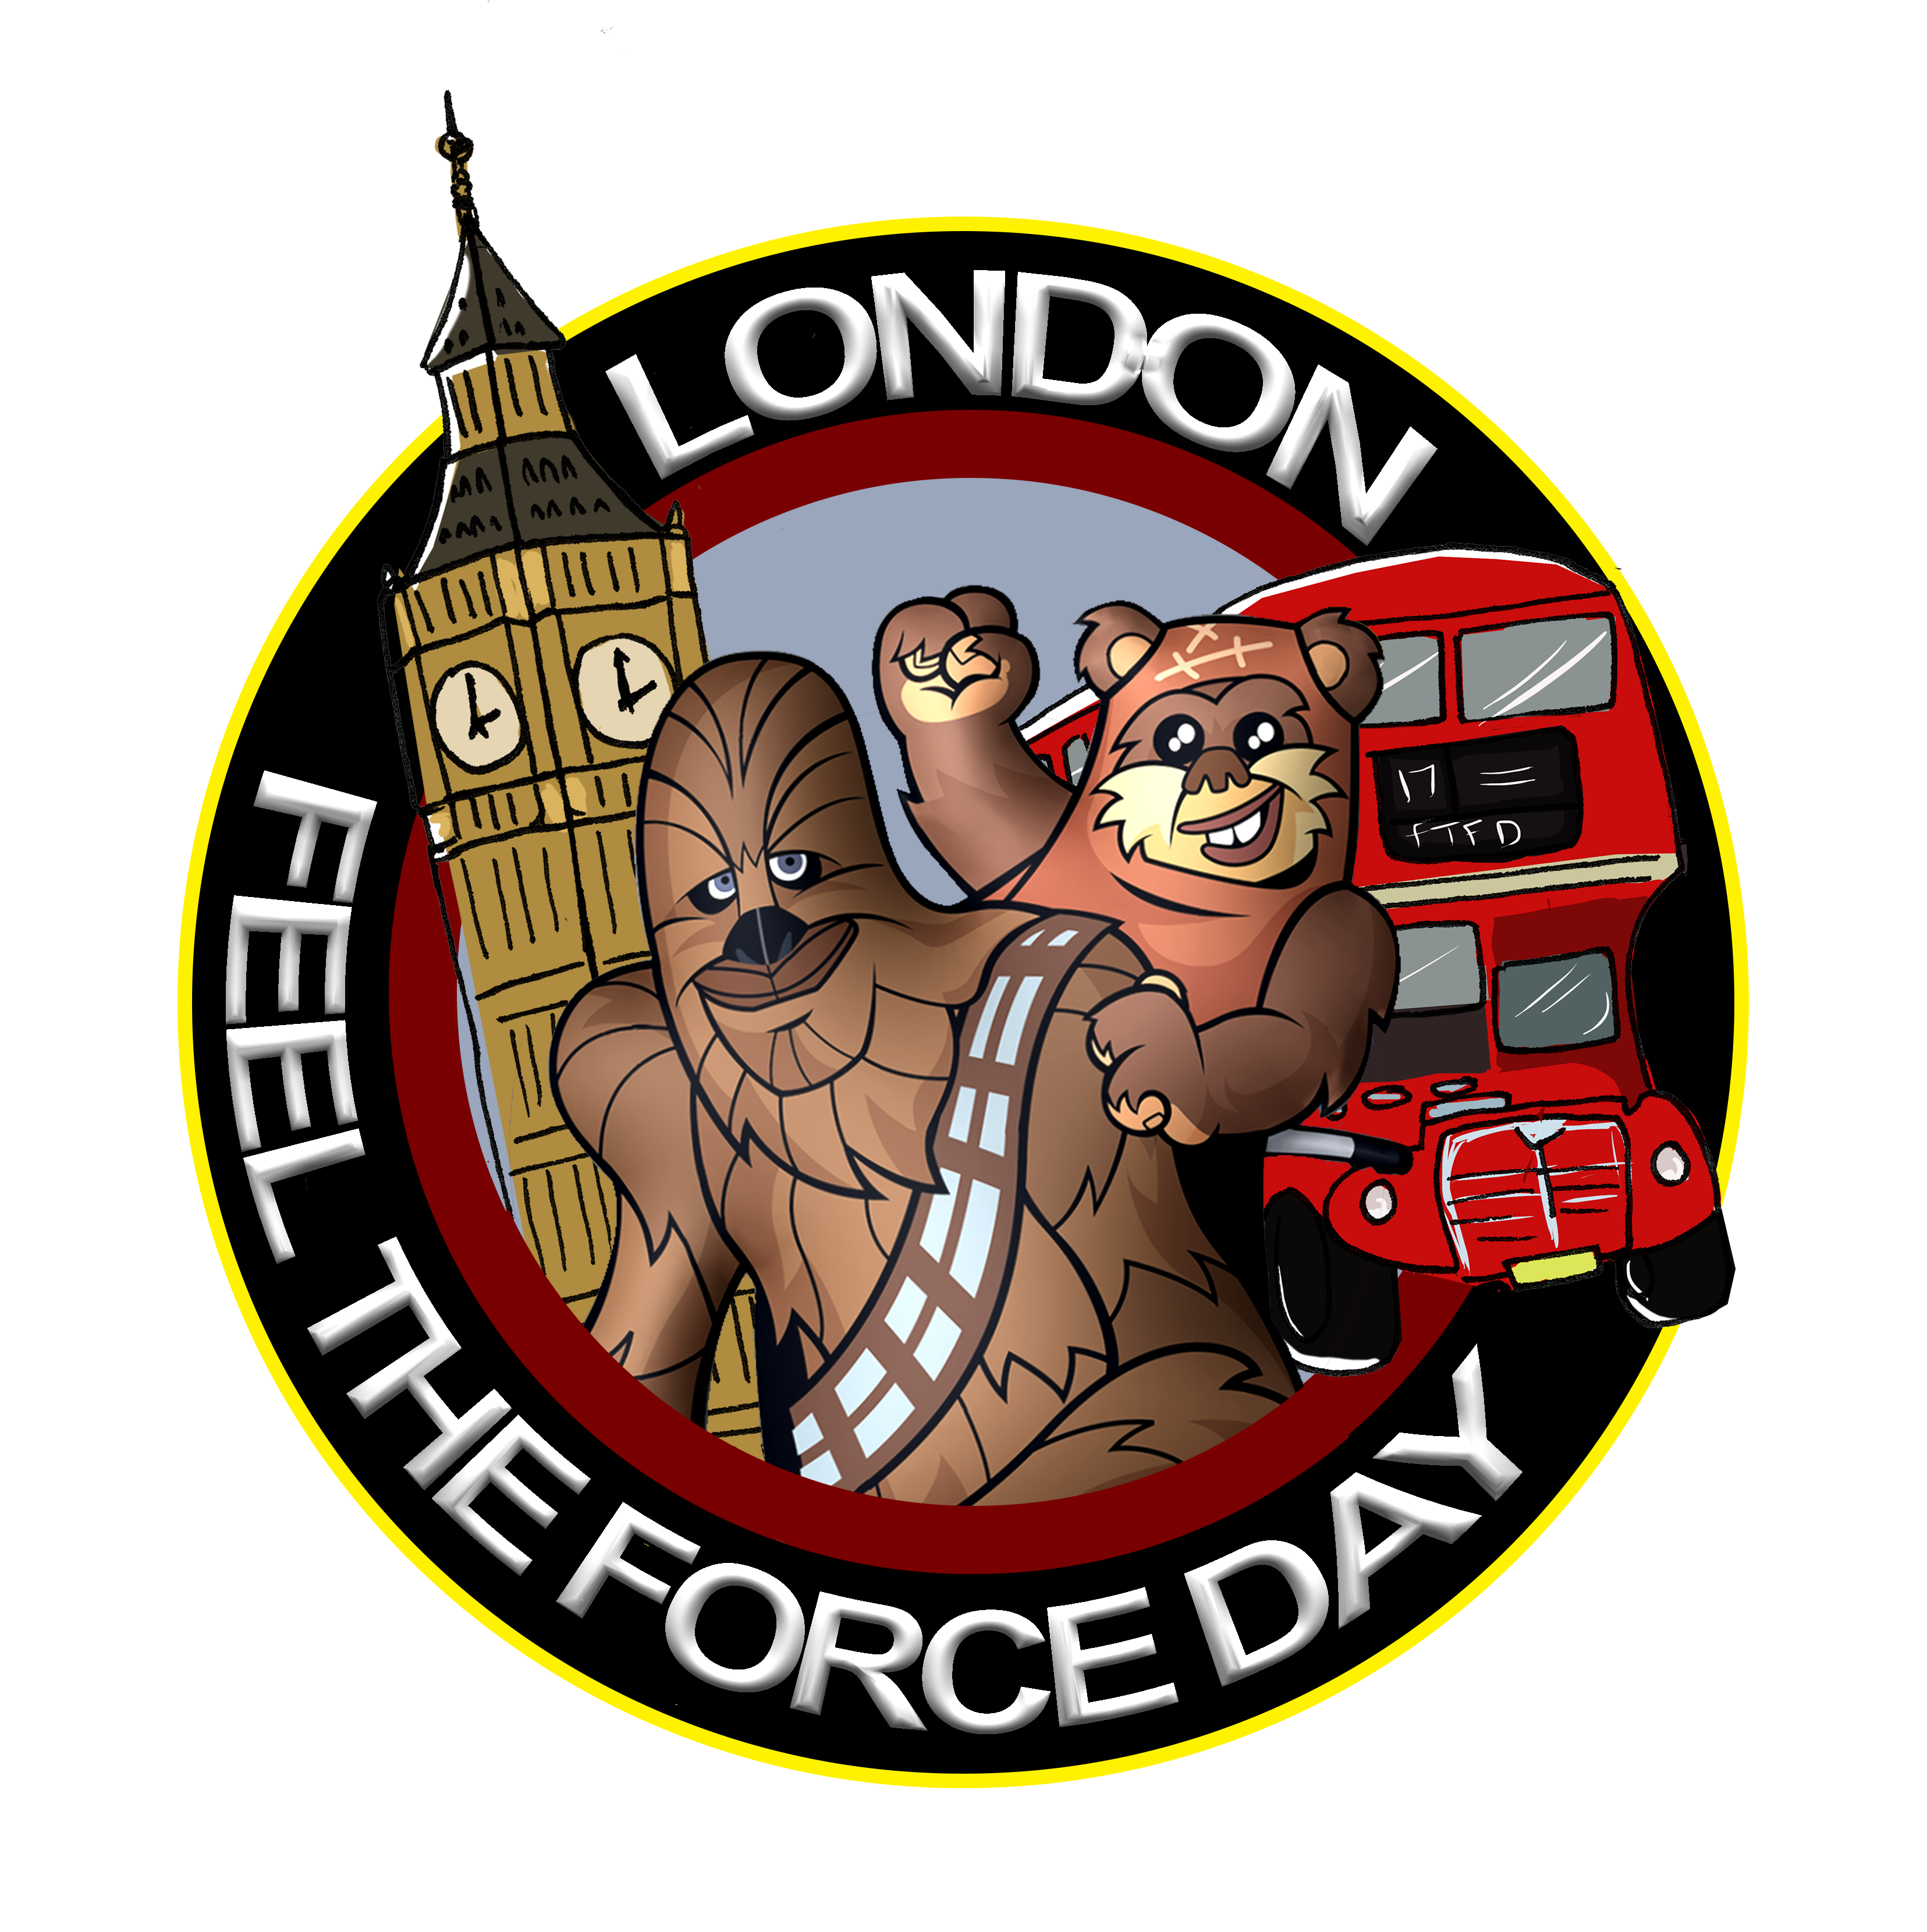 Feel the Force Day London Logo